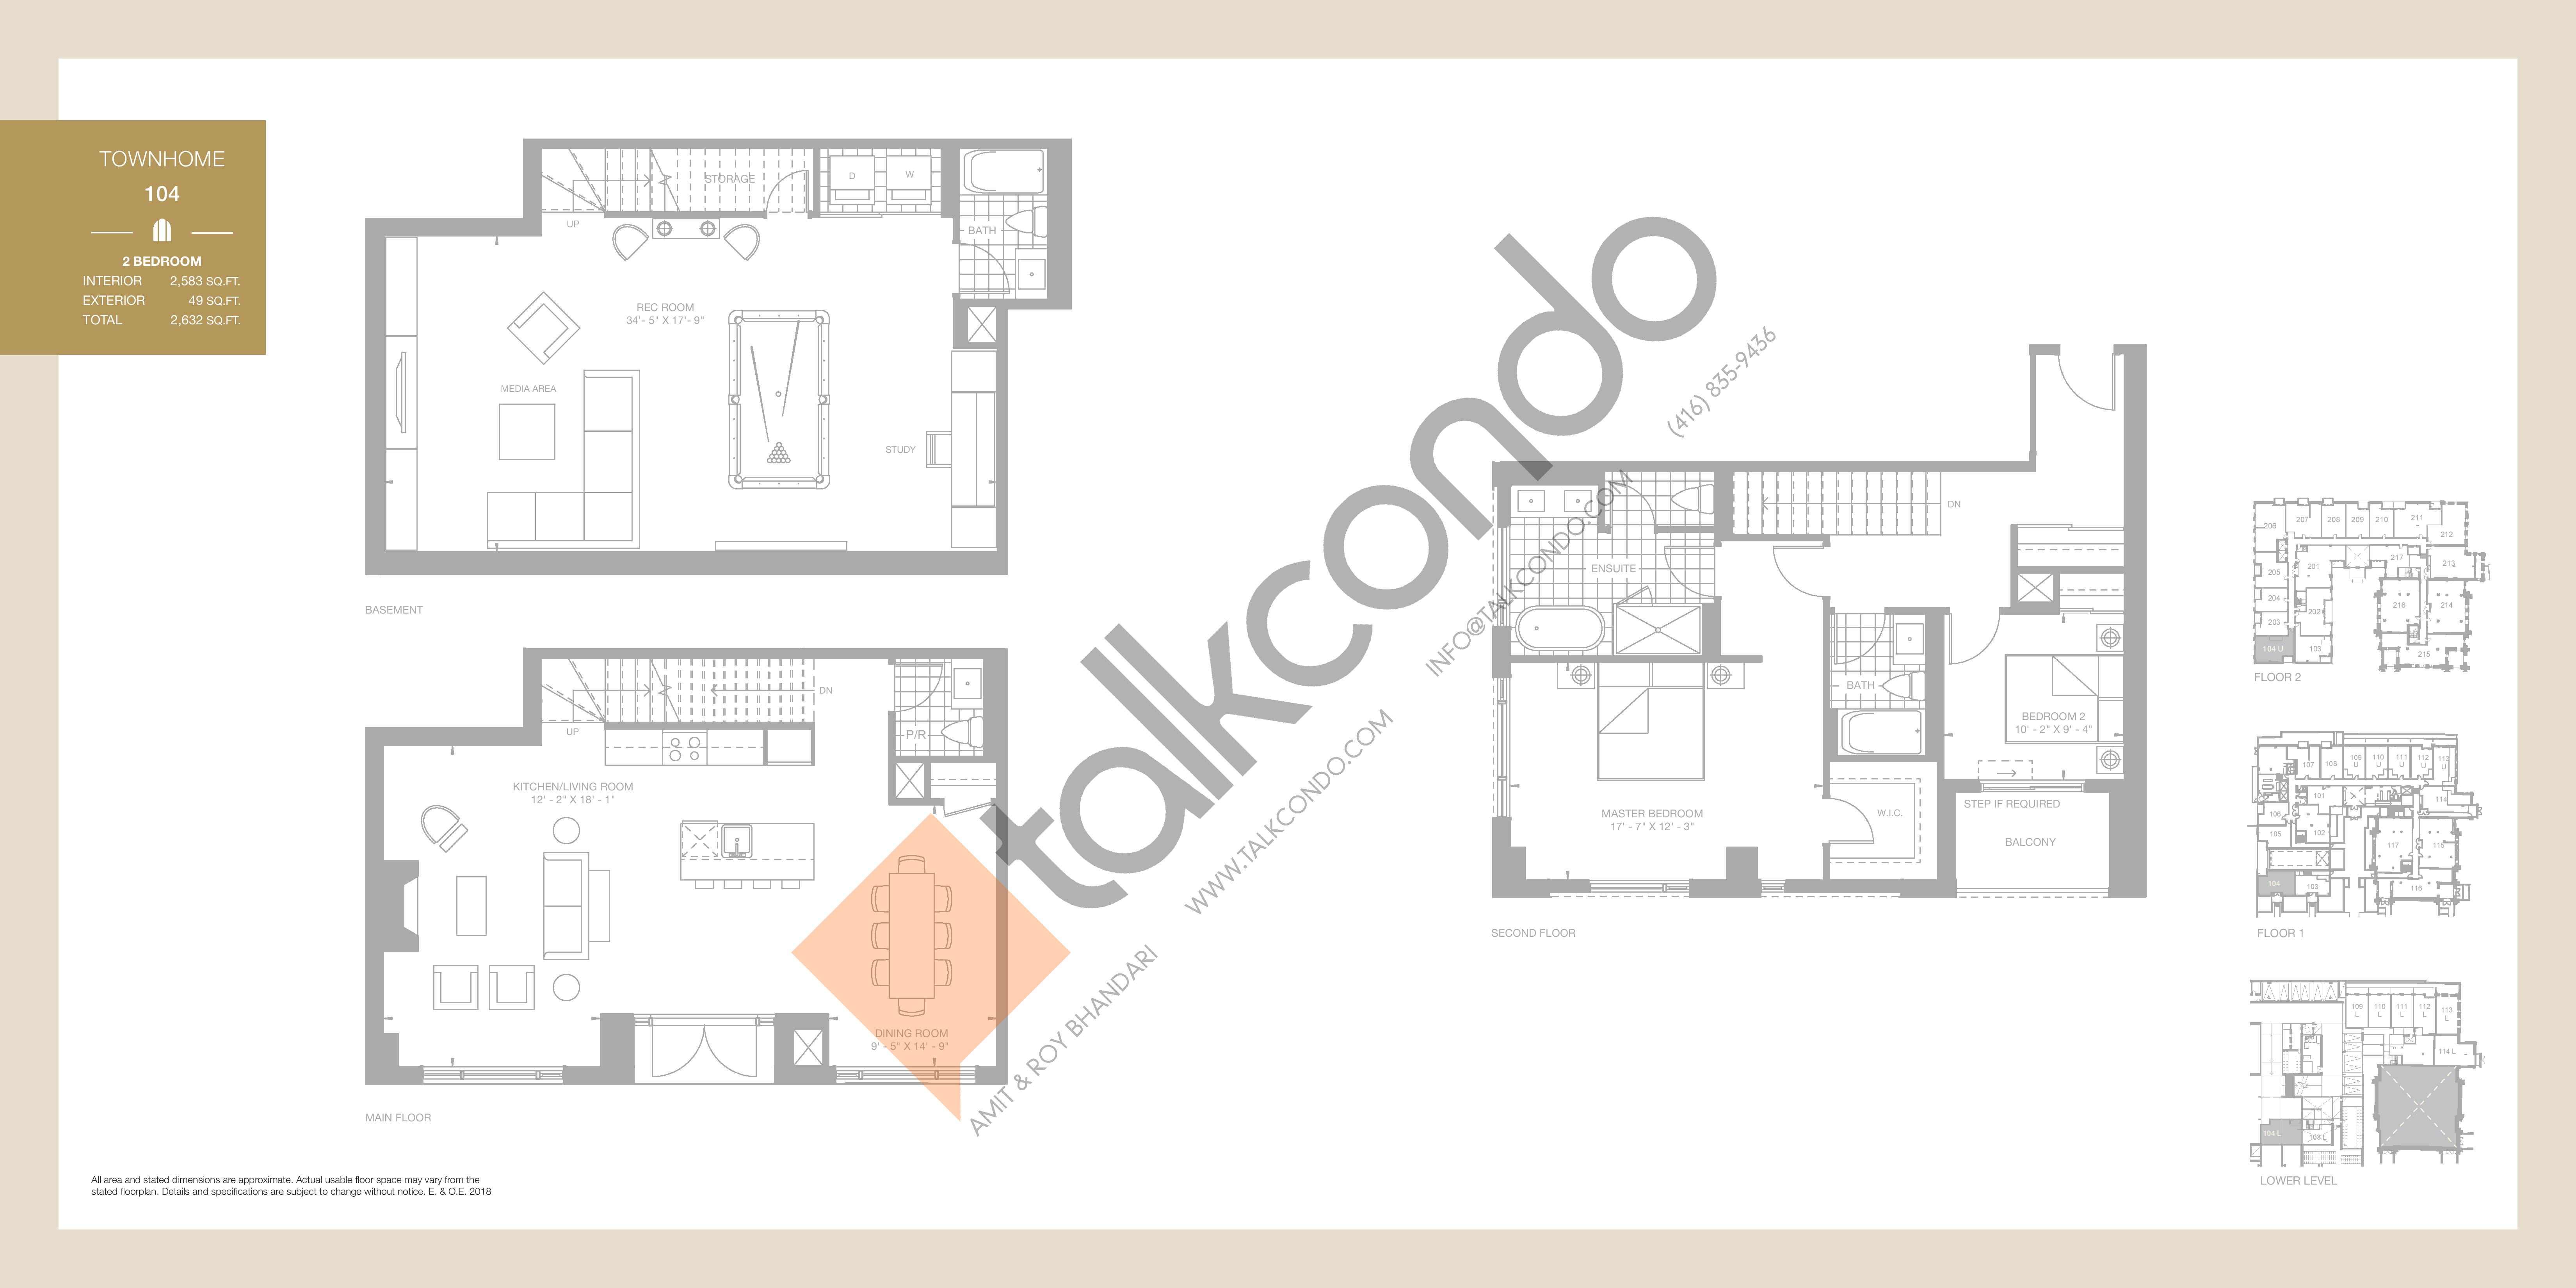 Townhome 104 Floor Plan at 260 High Park - 2583 sq.ft